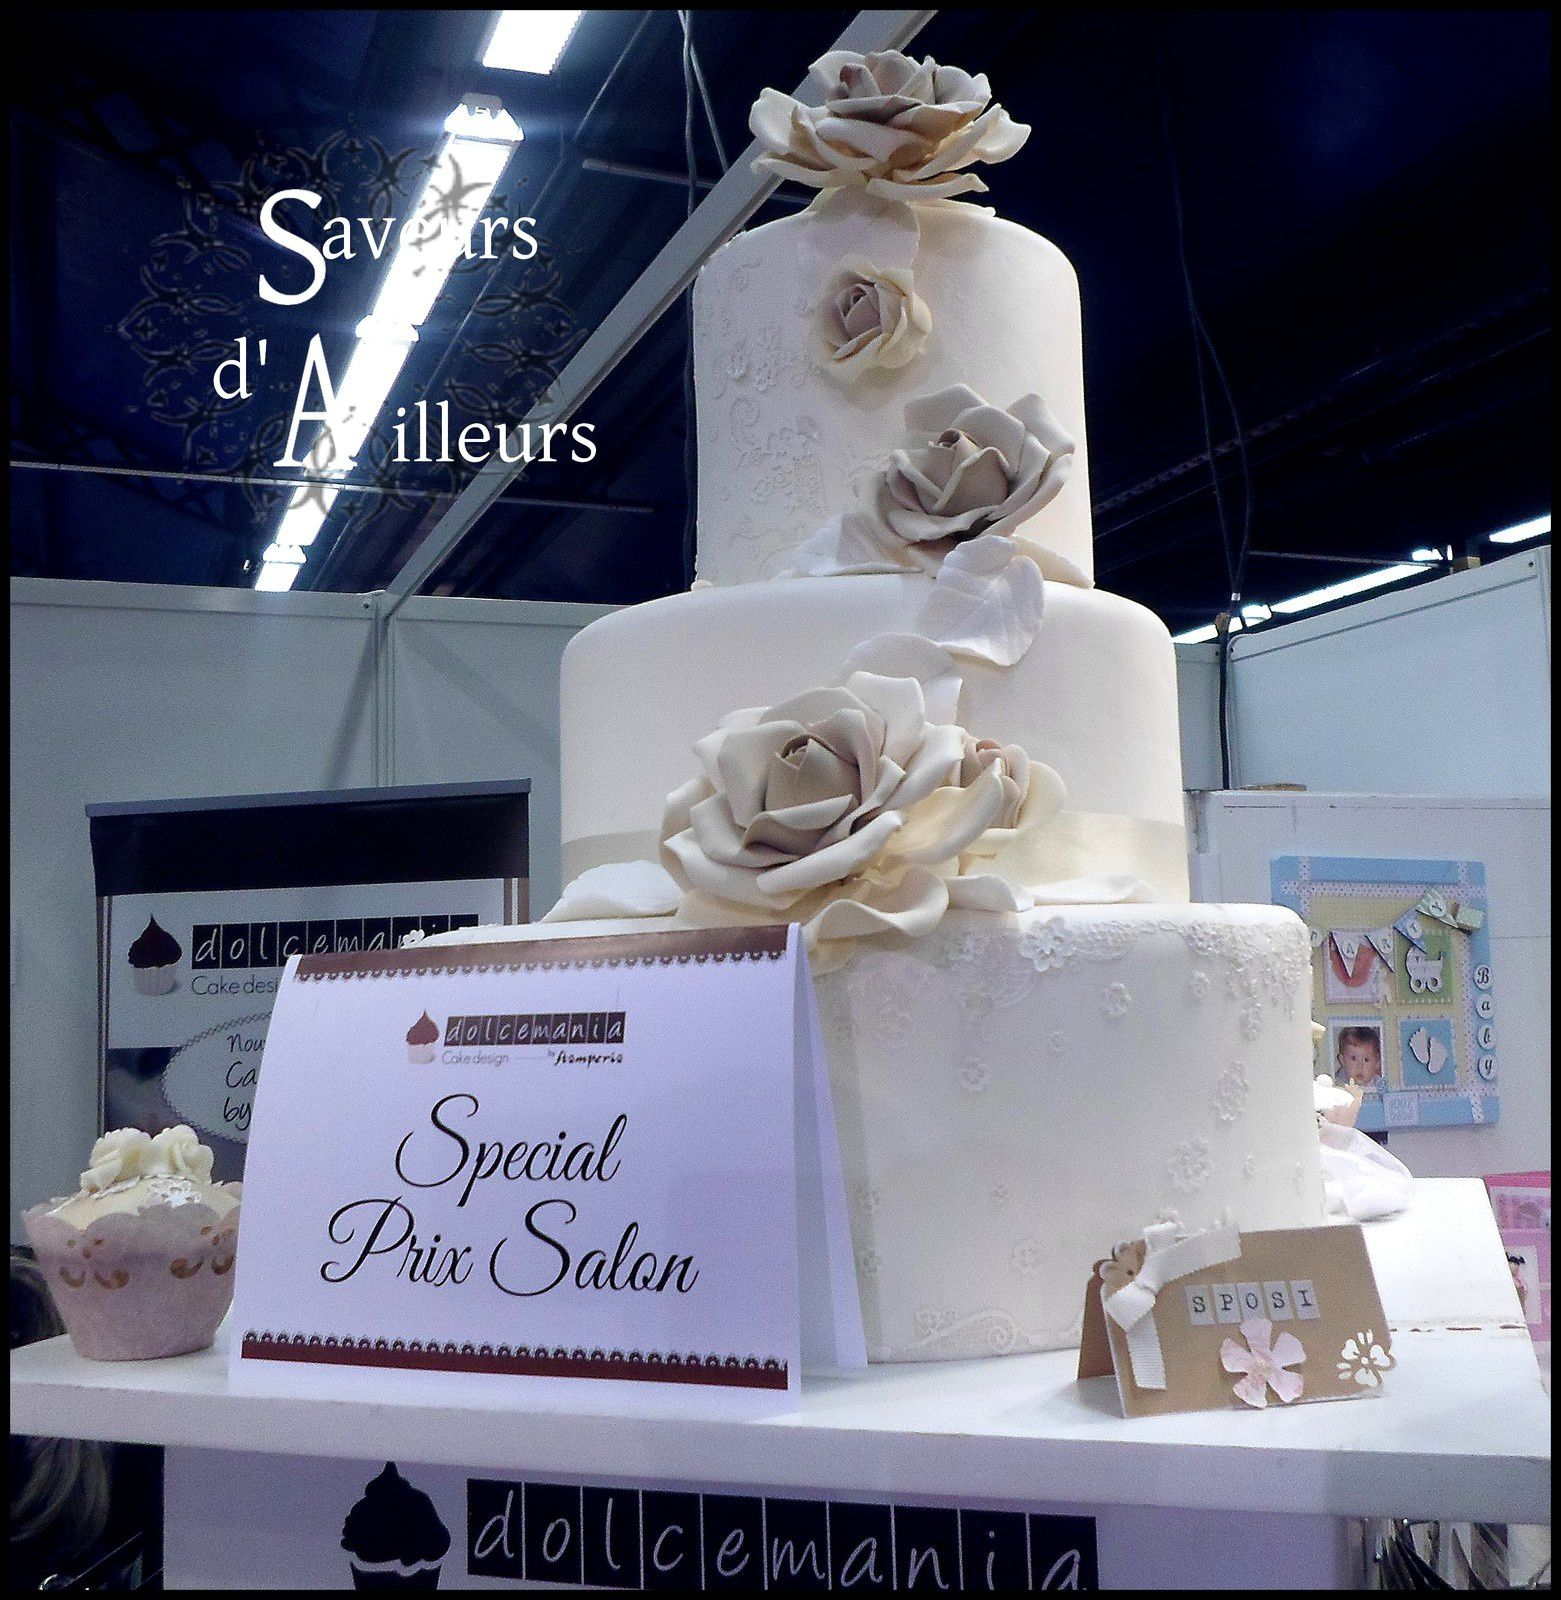 Salon Sugar à Paris (Pâtisserie Traditionnelle)